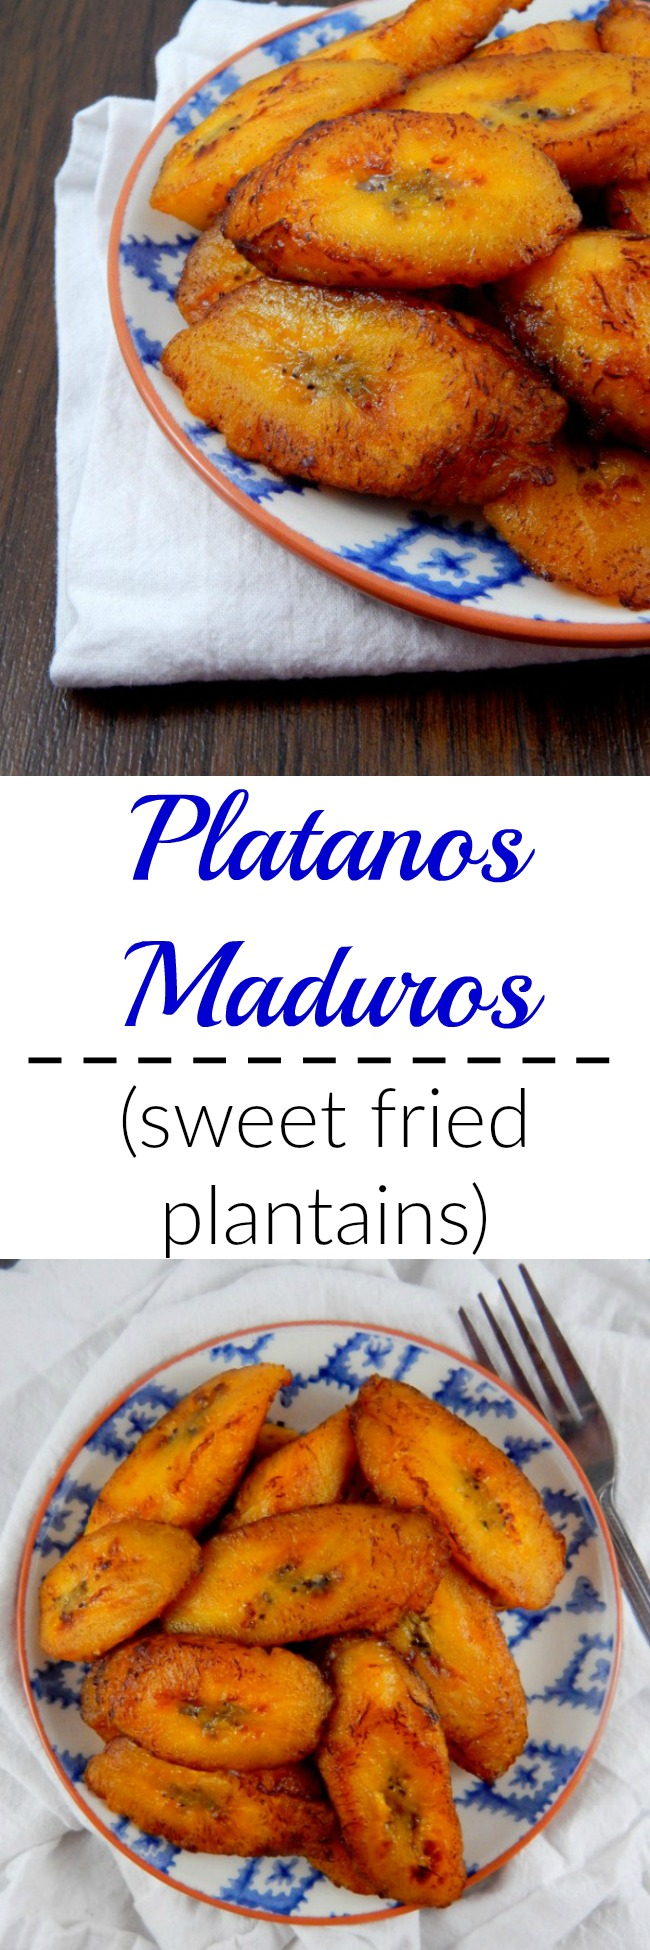 Platanos maduros - or sweet fried plantains - are a tasty side and a yummy traditional Latin American dish.